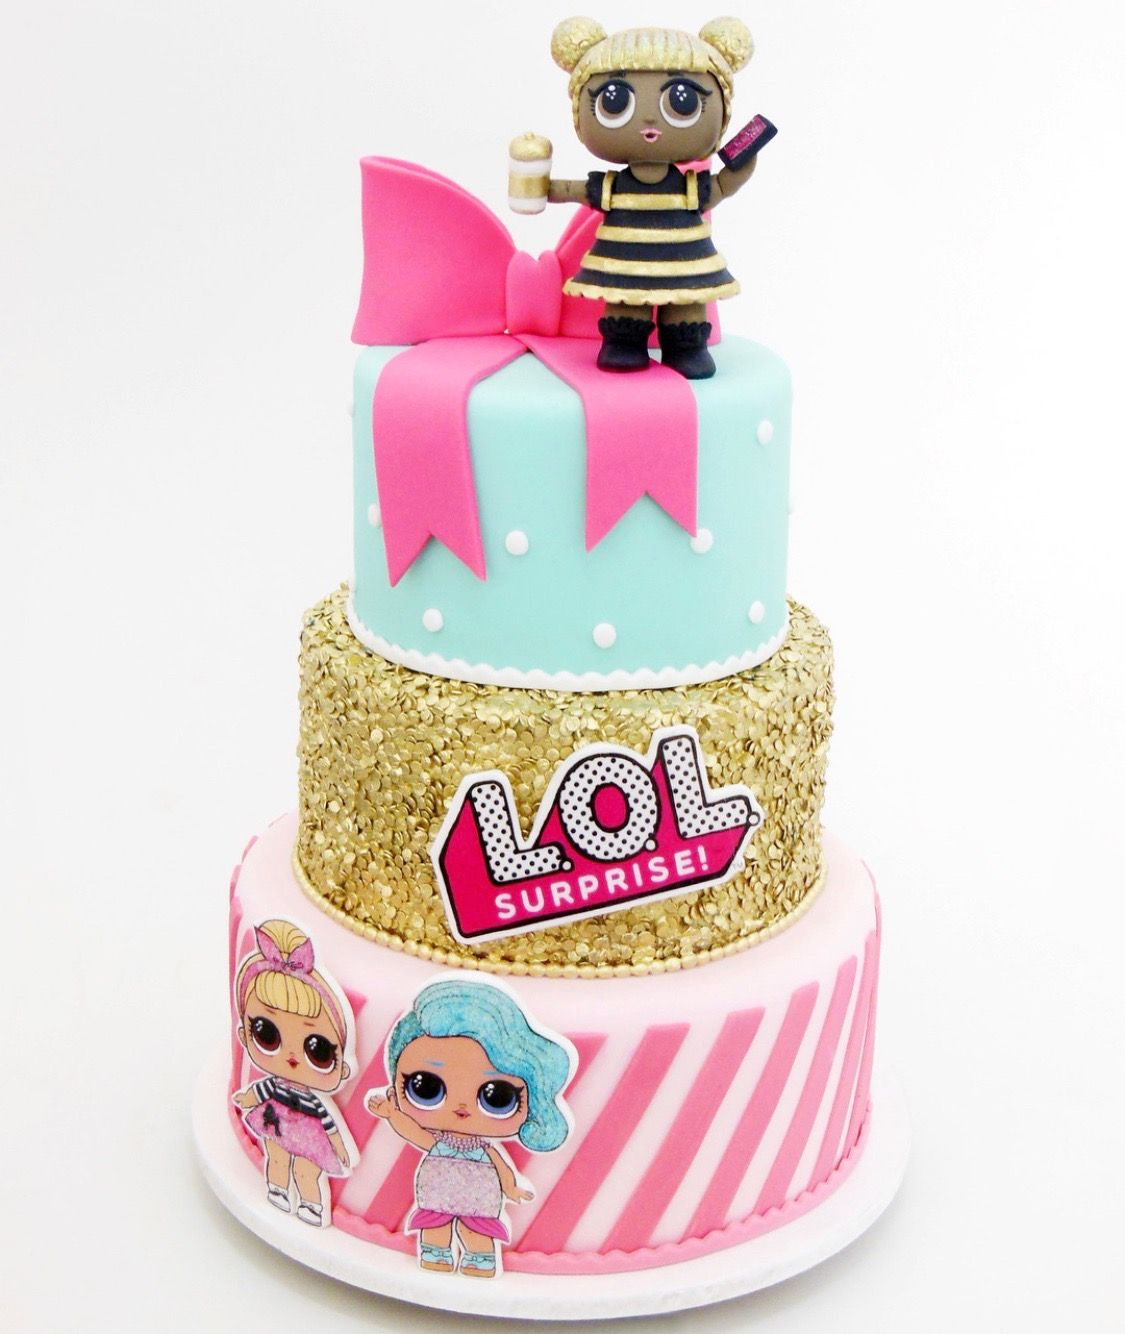 Lol Surprise Birthday Cake Lol Surprise Party Ideas In 2019 Doll